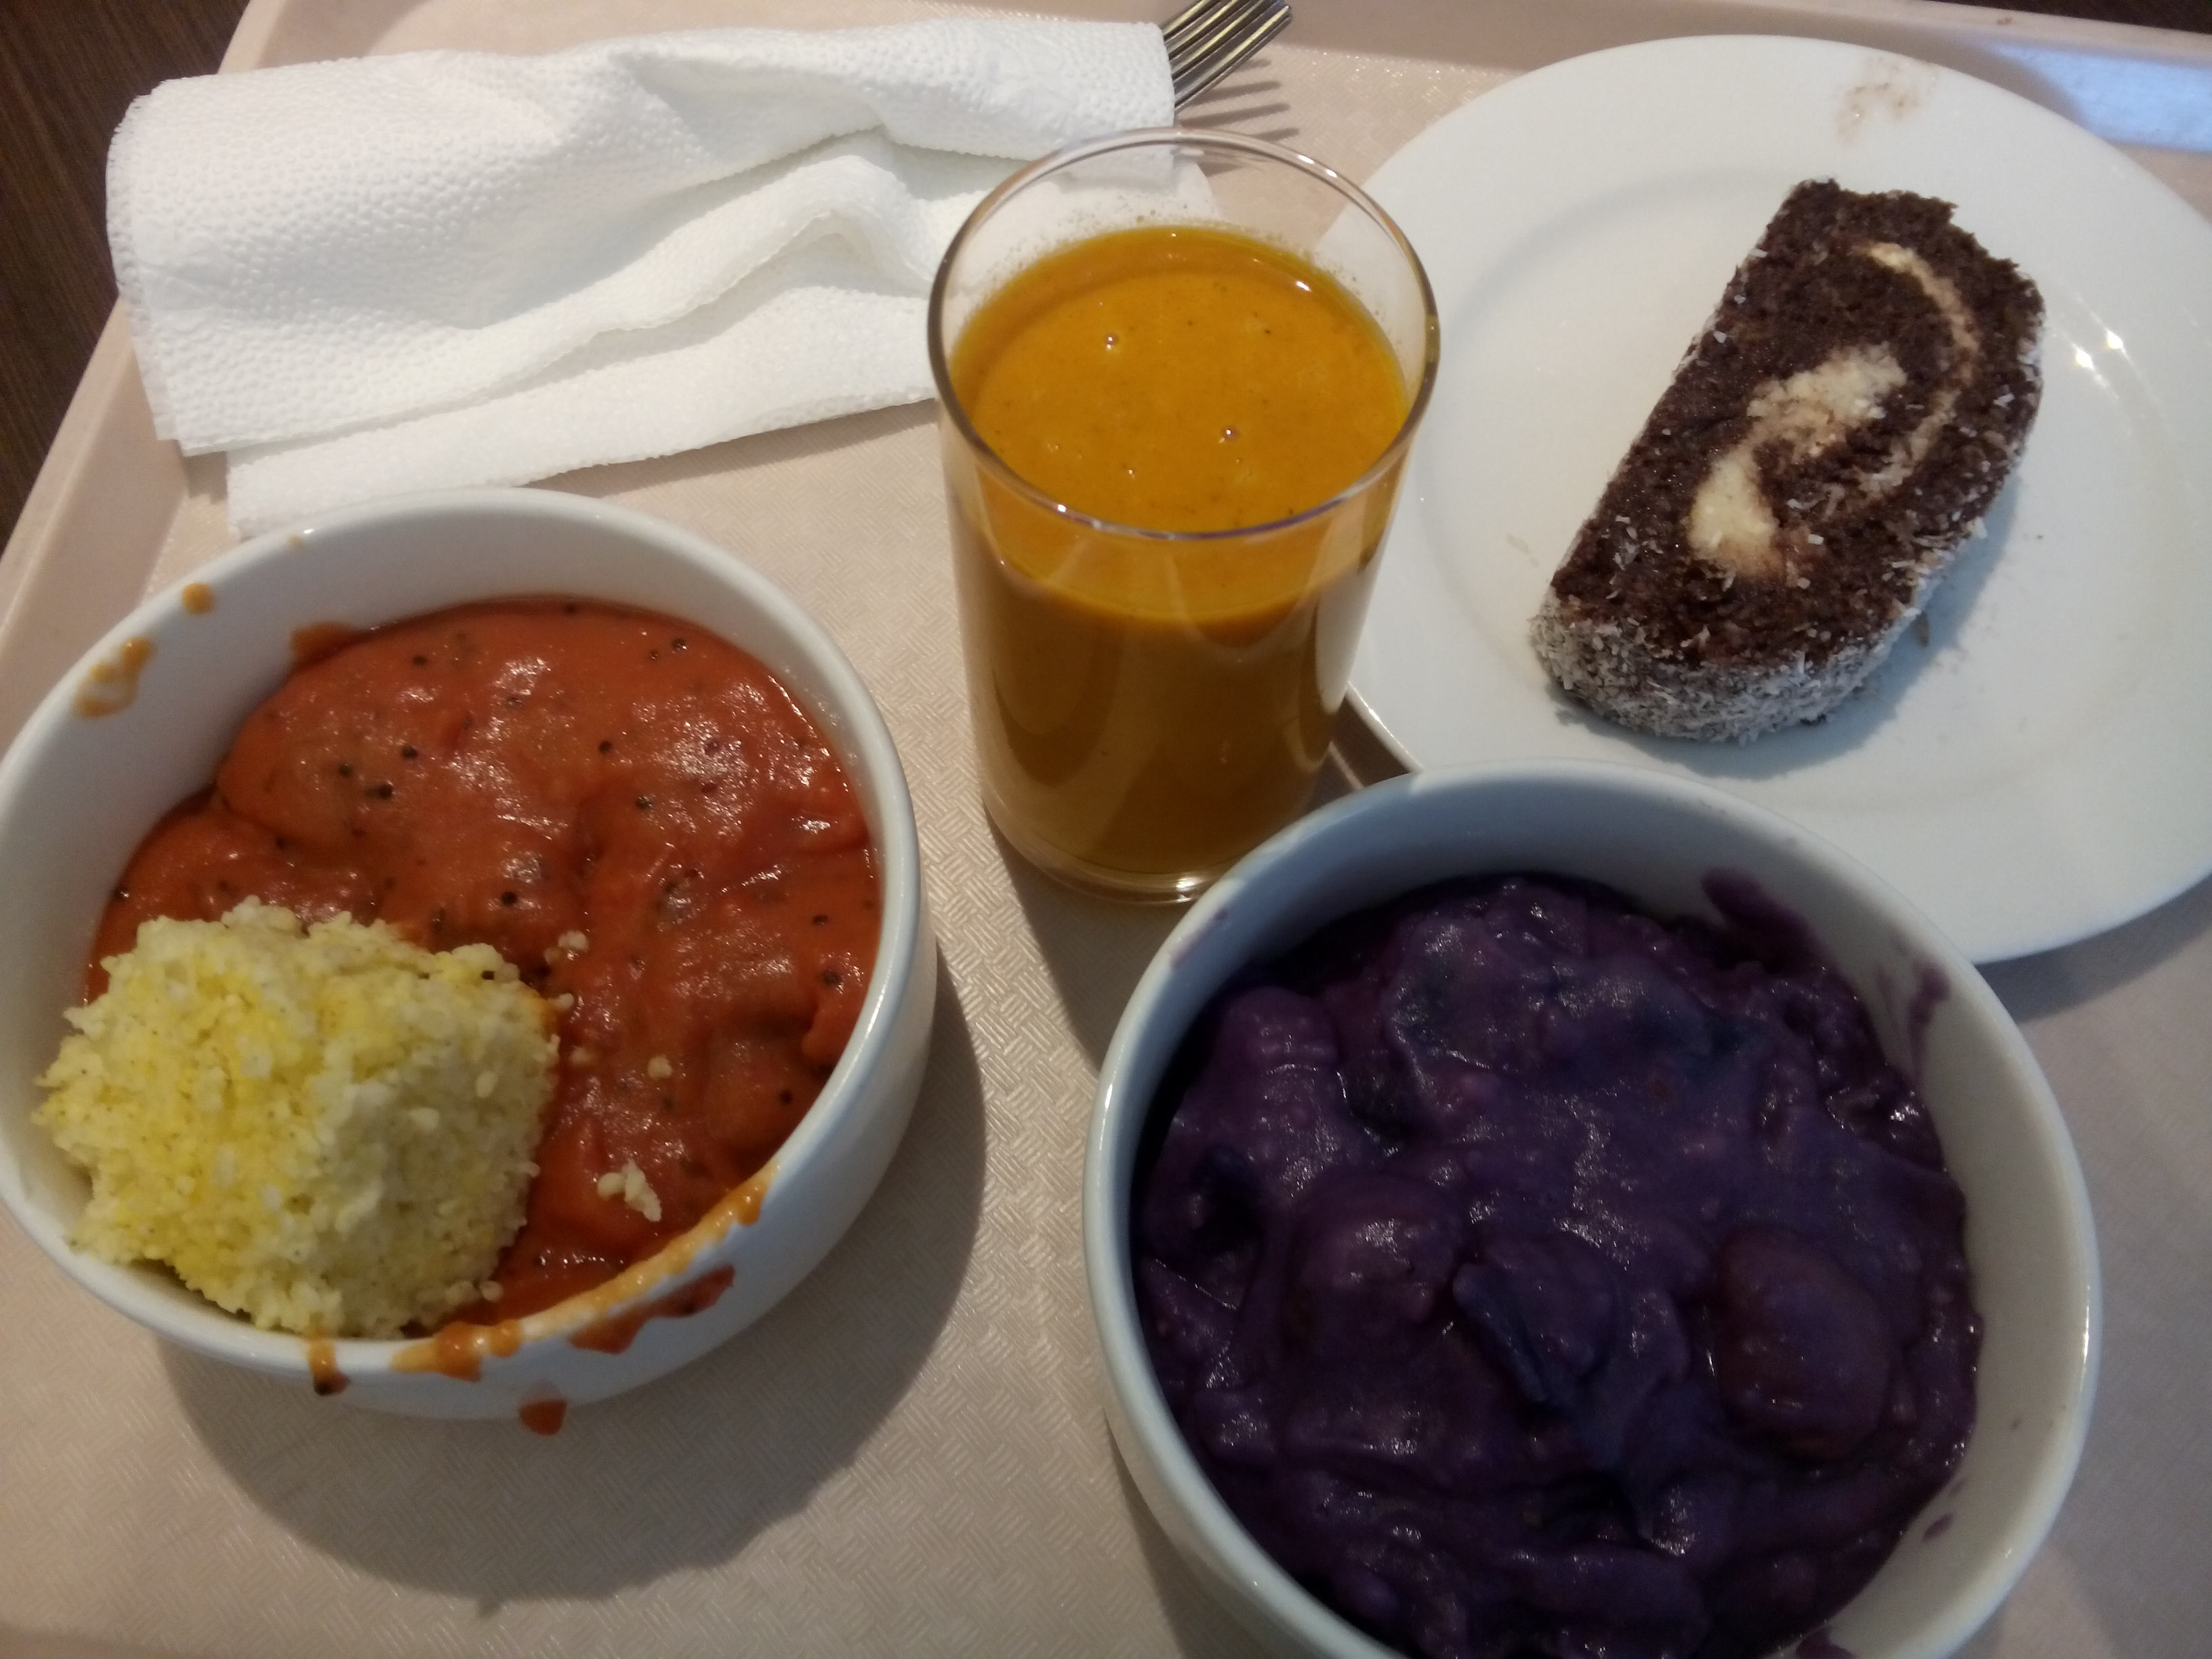 Two bowls, one containing red mush and millet, one with dark purple mush; in between an orange smoothie, and beside a swirly slice of cake